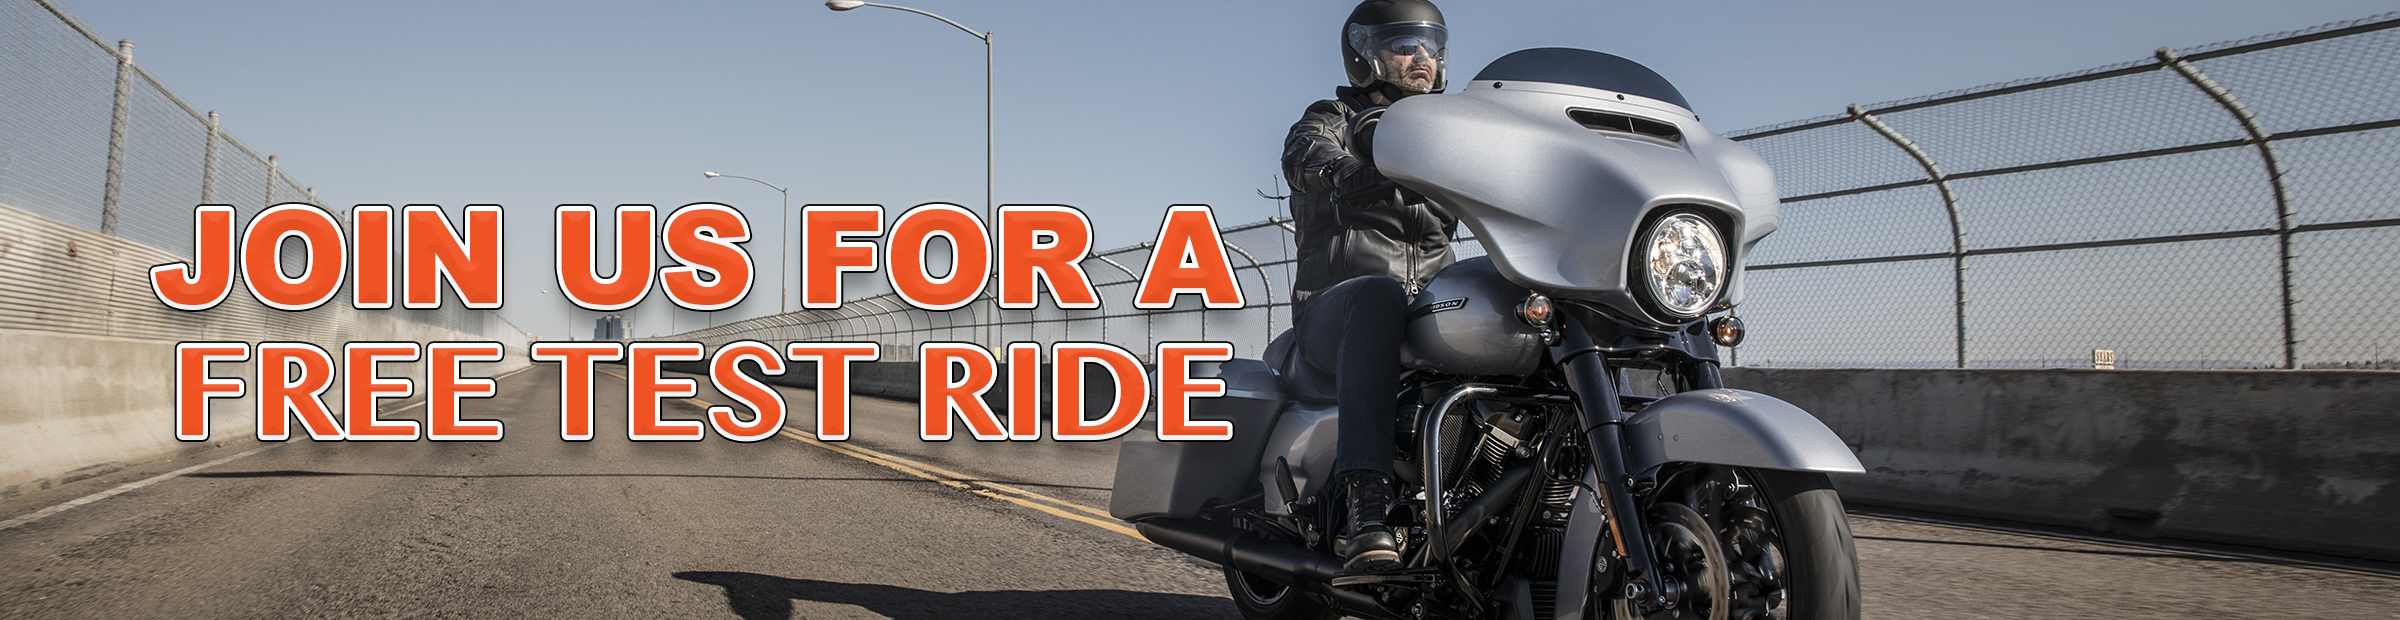 Take a Free Test Ride - take yours today